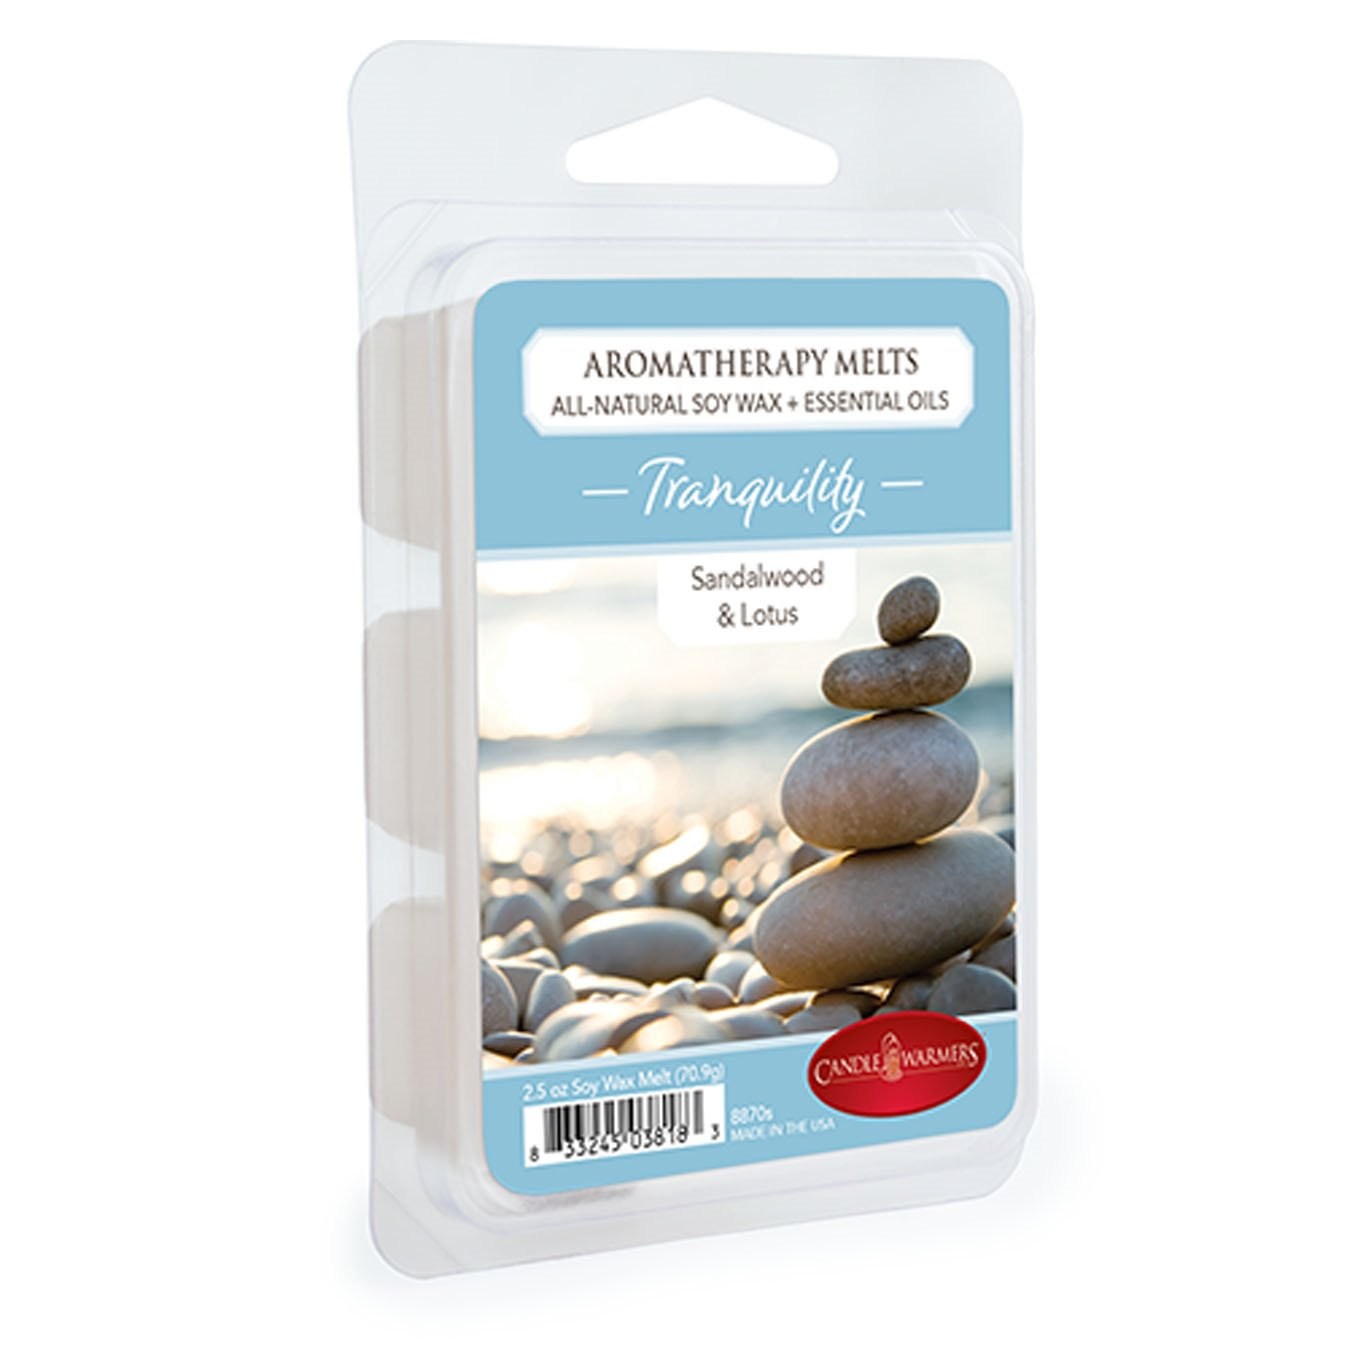 Tranquility Aromatherapy Wax Melts 2.5 oz by Candle Warmers